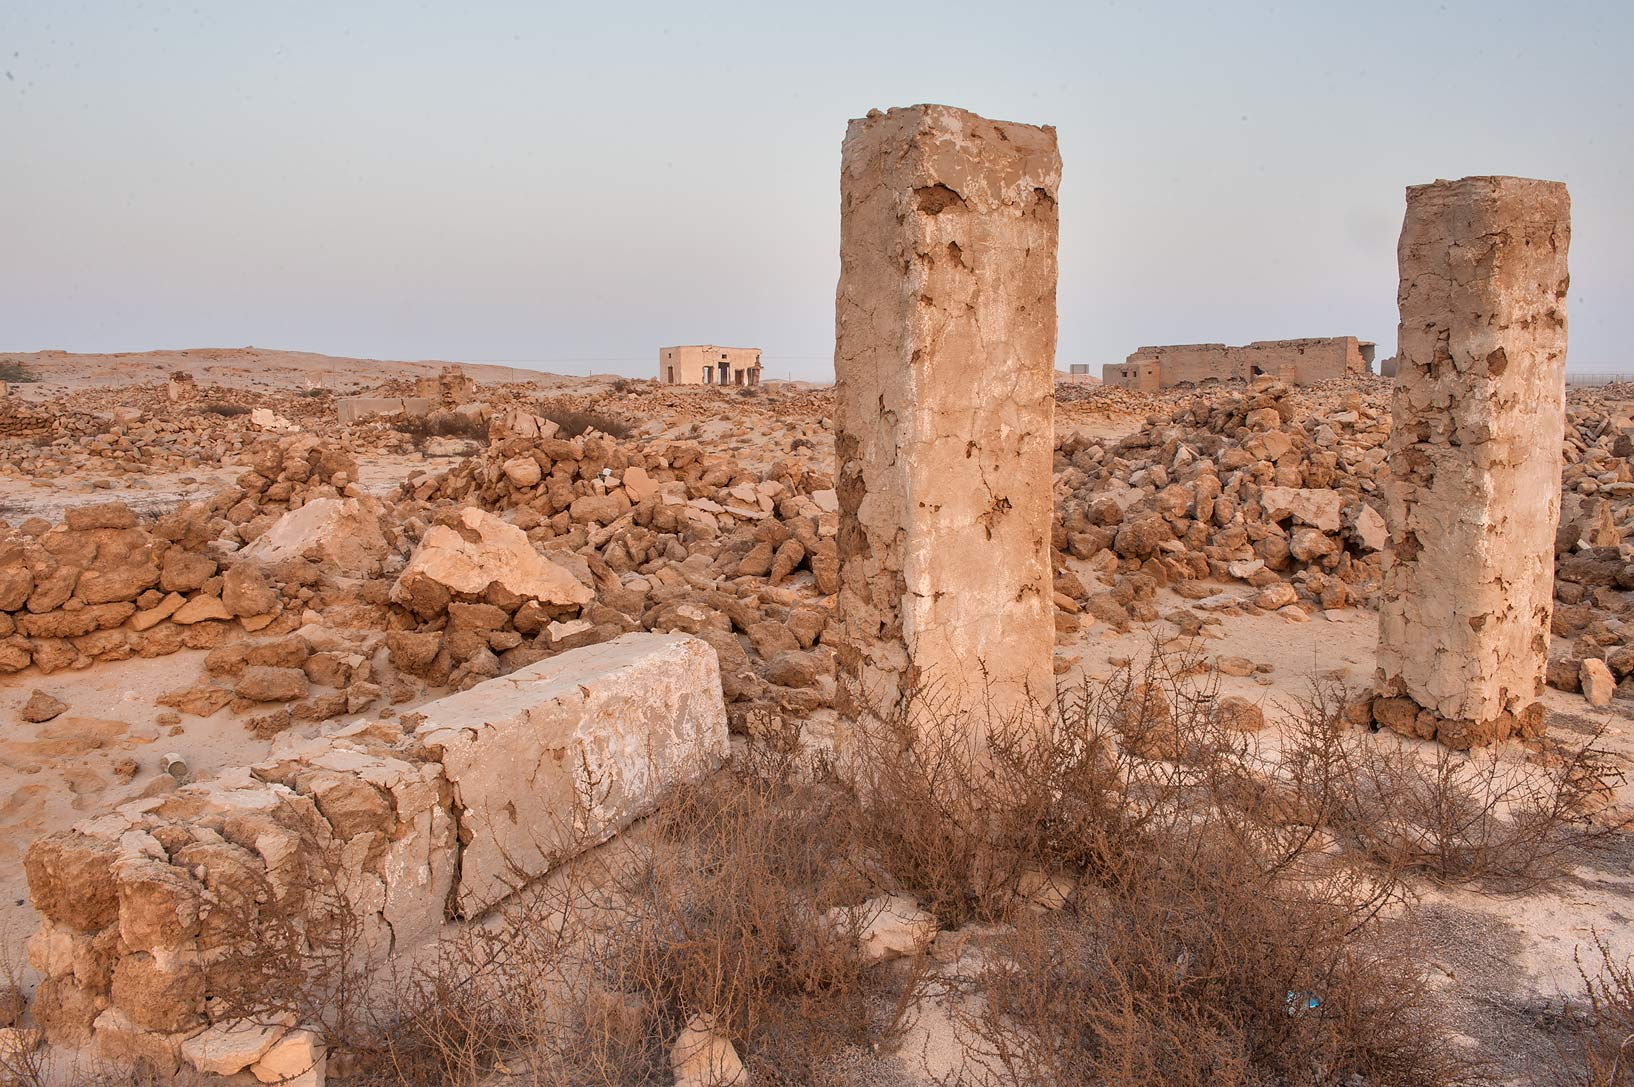 Stone ruins in old fishing village (ghost town...eastern coast, Ash Shamal area. Qatar